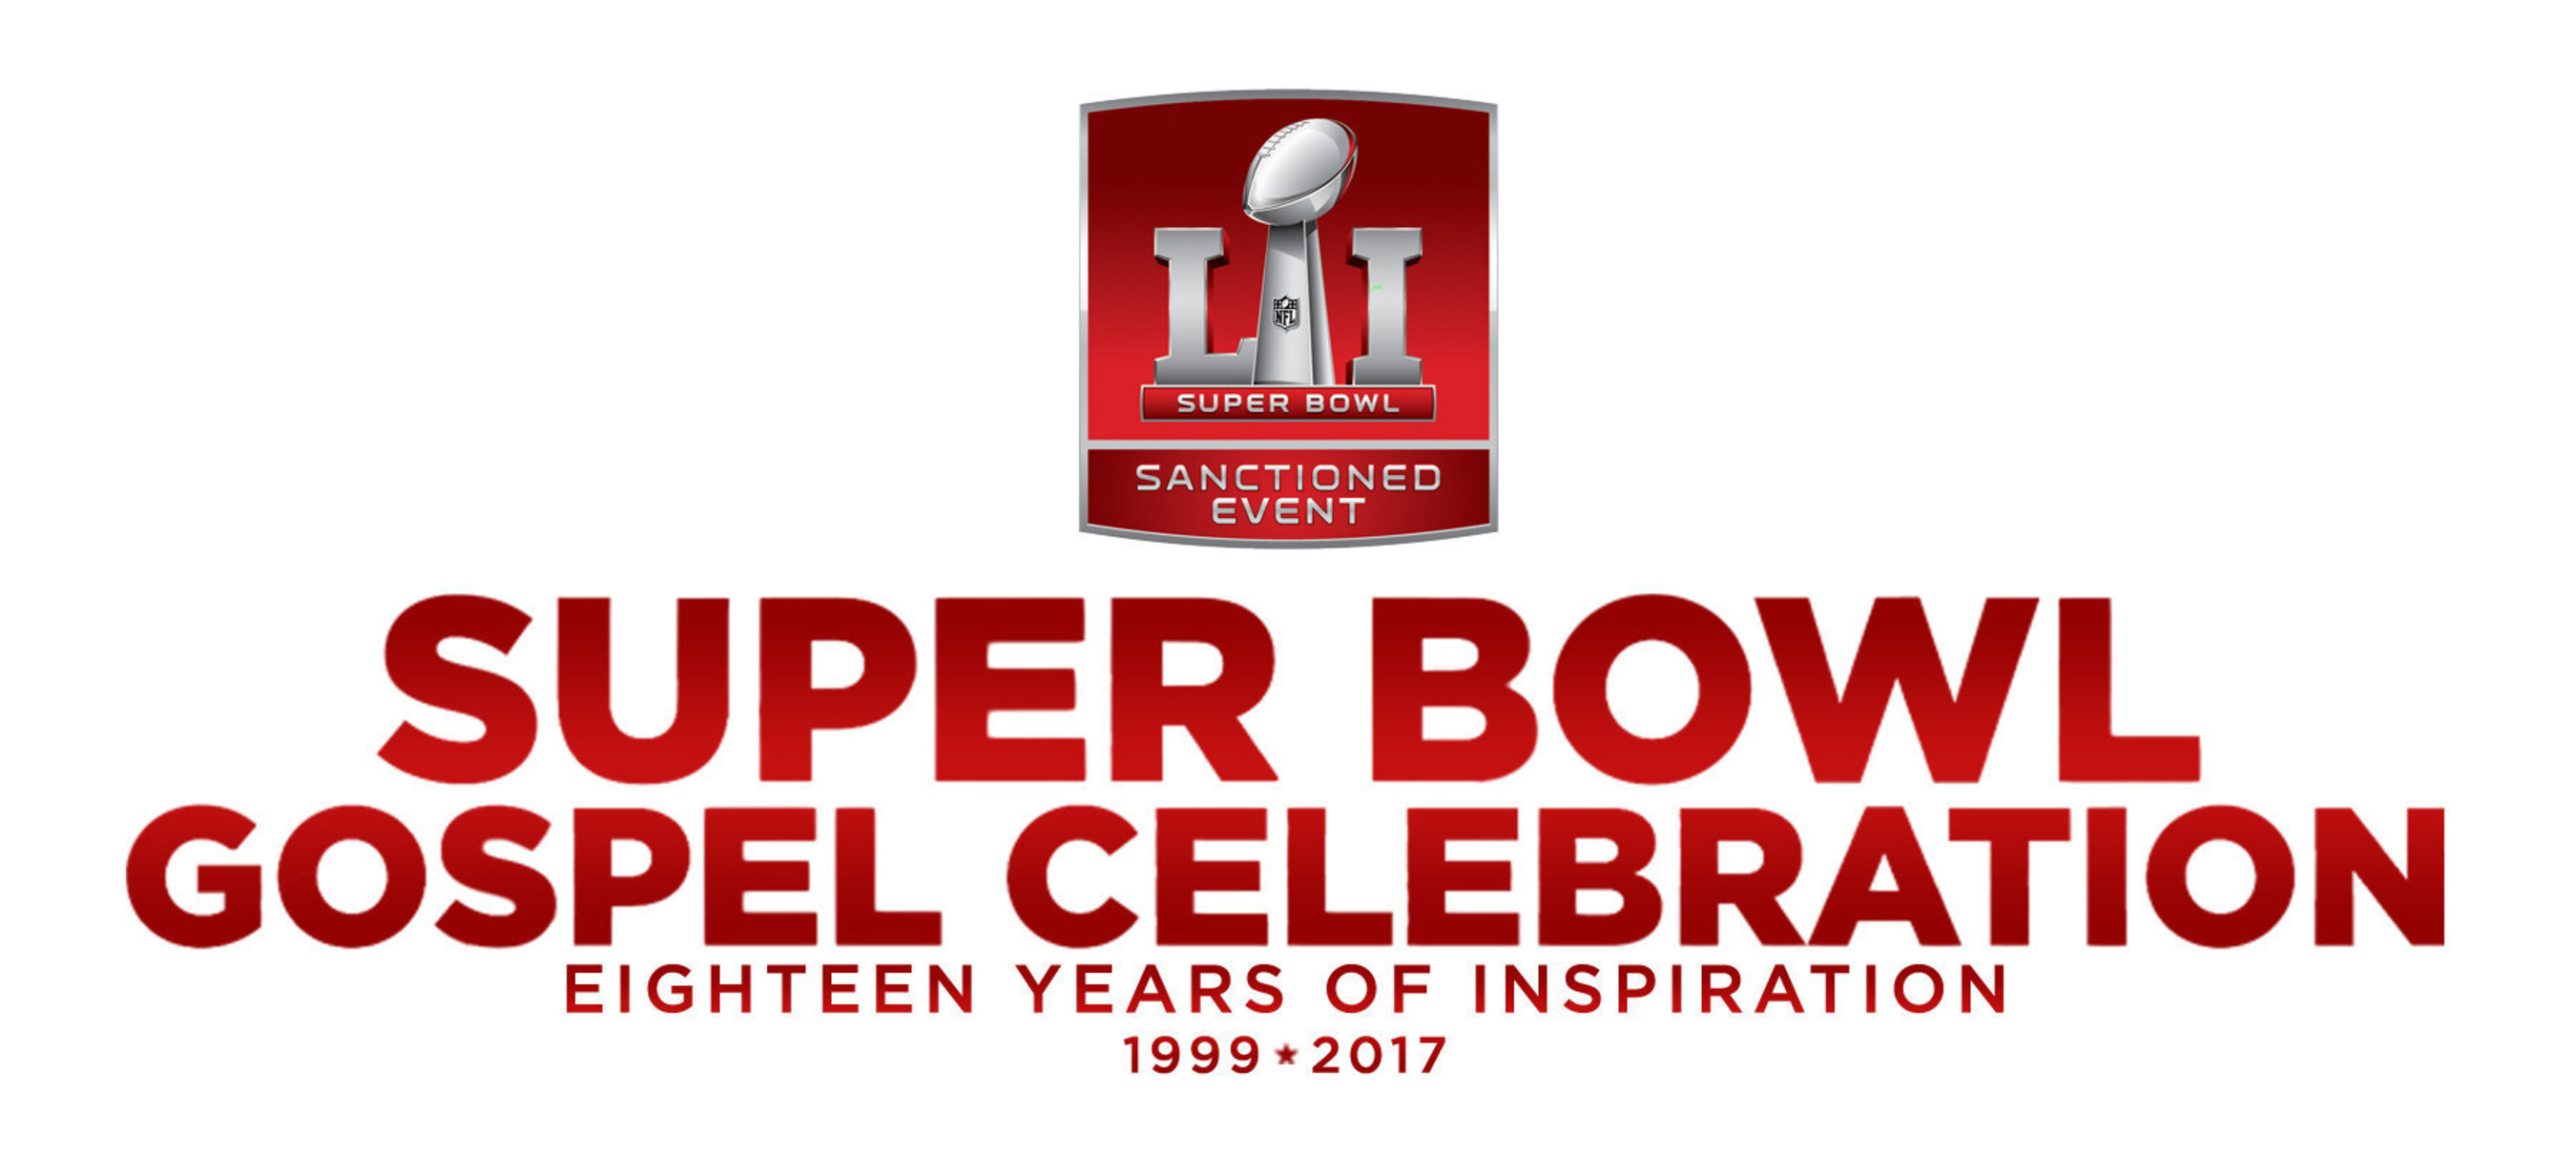 Super Bowl Gospel Celebration Coming To Houston, Texas For Super Bowl LI On Friday, February 3, 2017